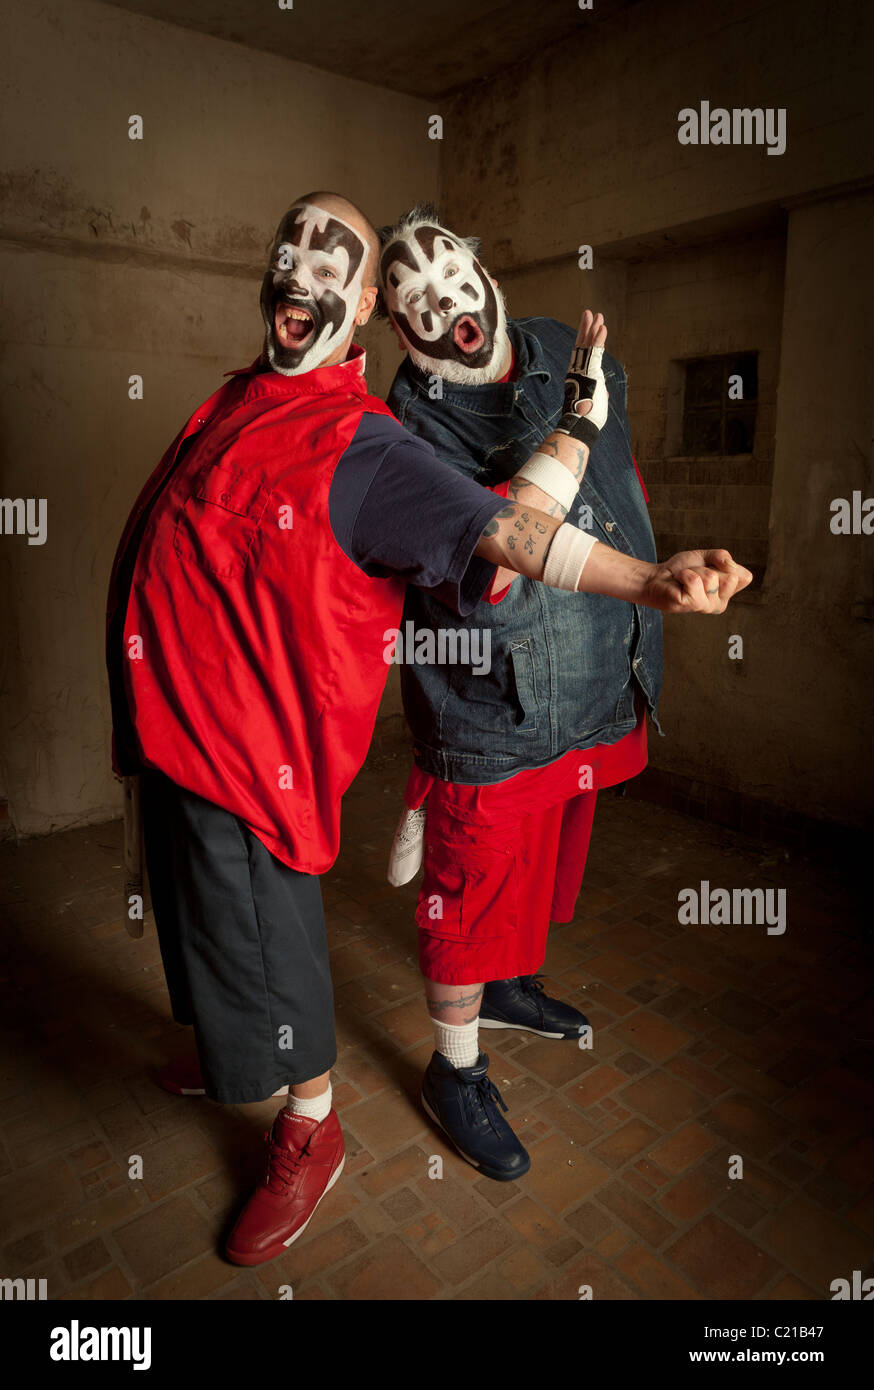 J violentos y Shaggy 2 Droga de Insane Clown Posse posar para fotos antes de un concierto en Milwaukee, Wisconsin. Imagen De Stock